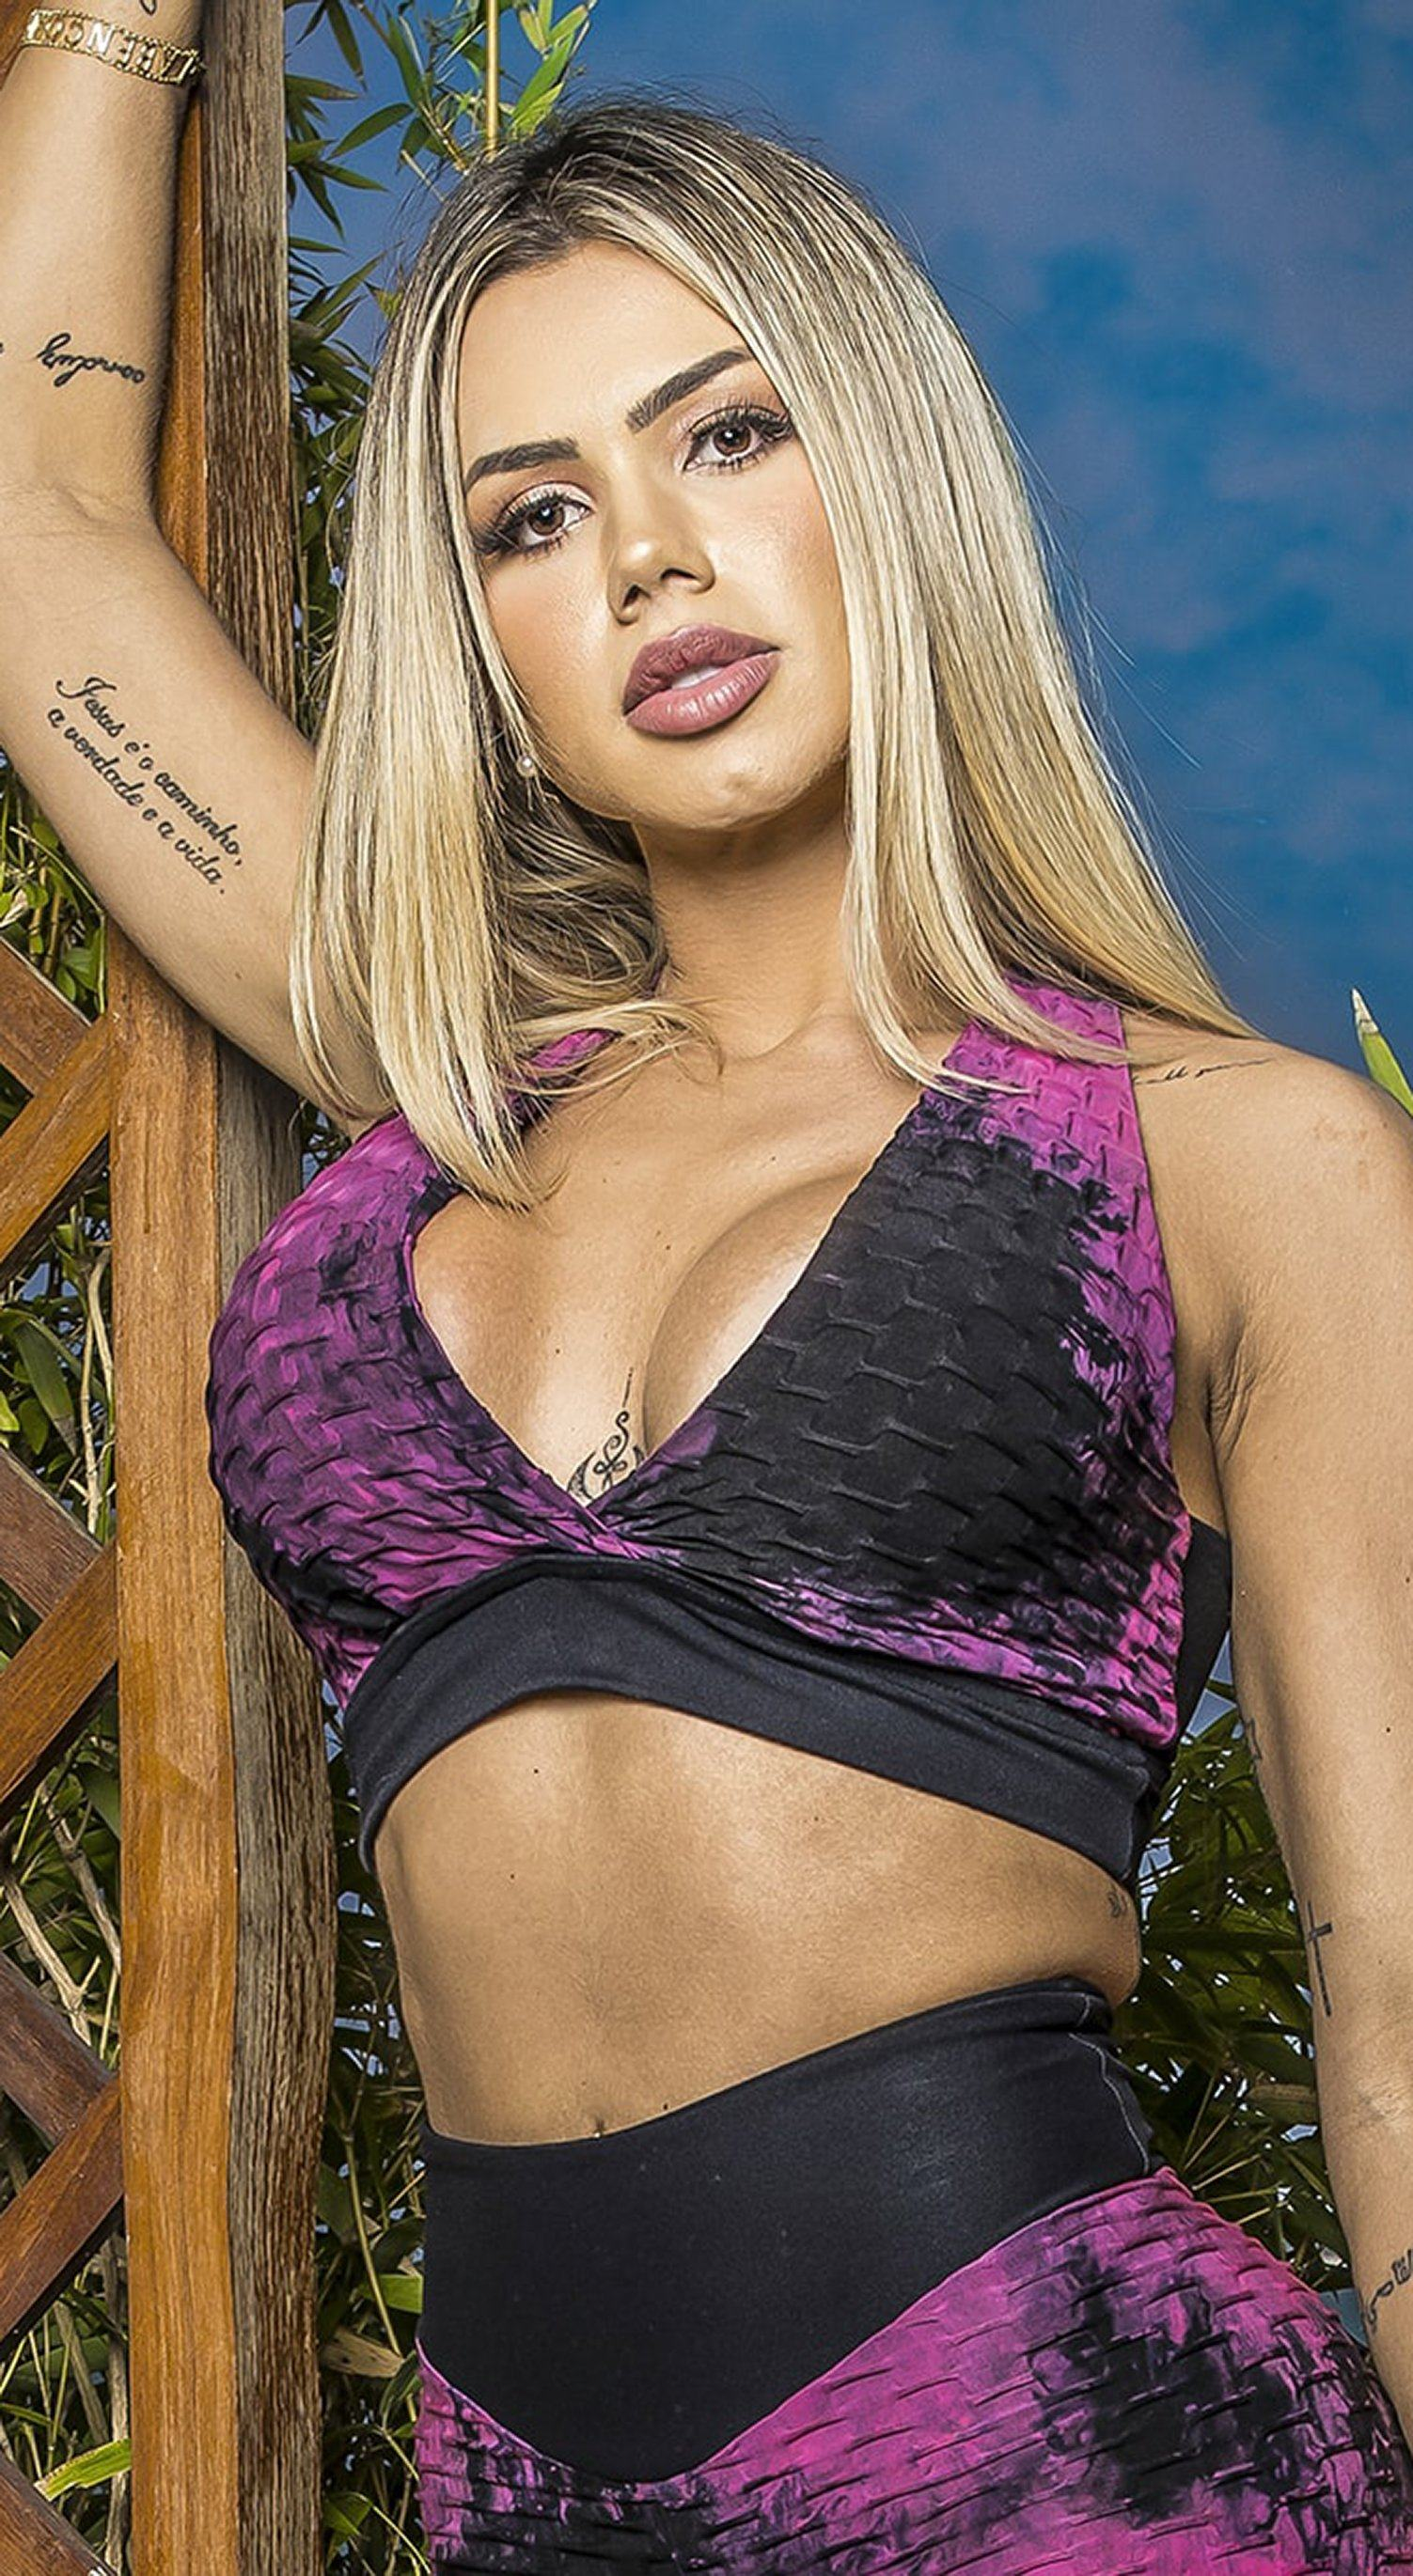 Brazilian Sports Bra - Textured Tie Dye Pink & Black